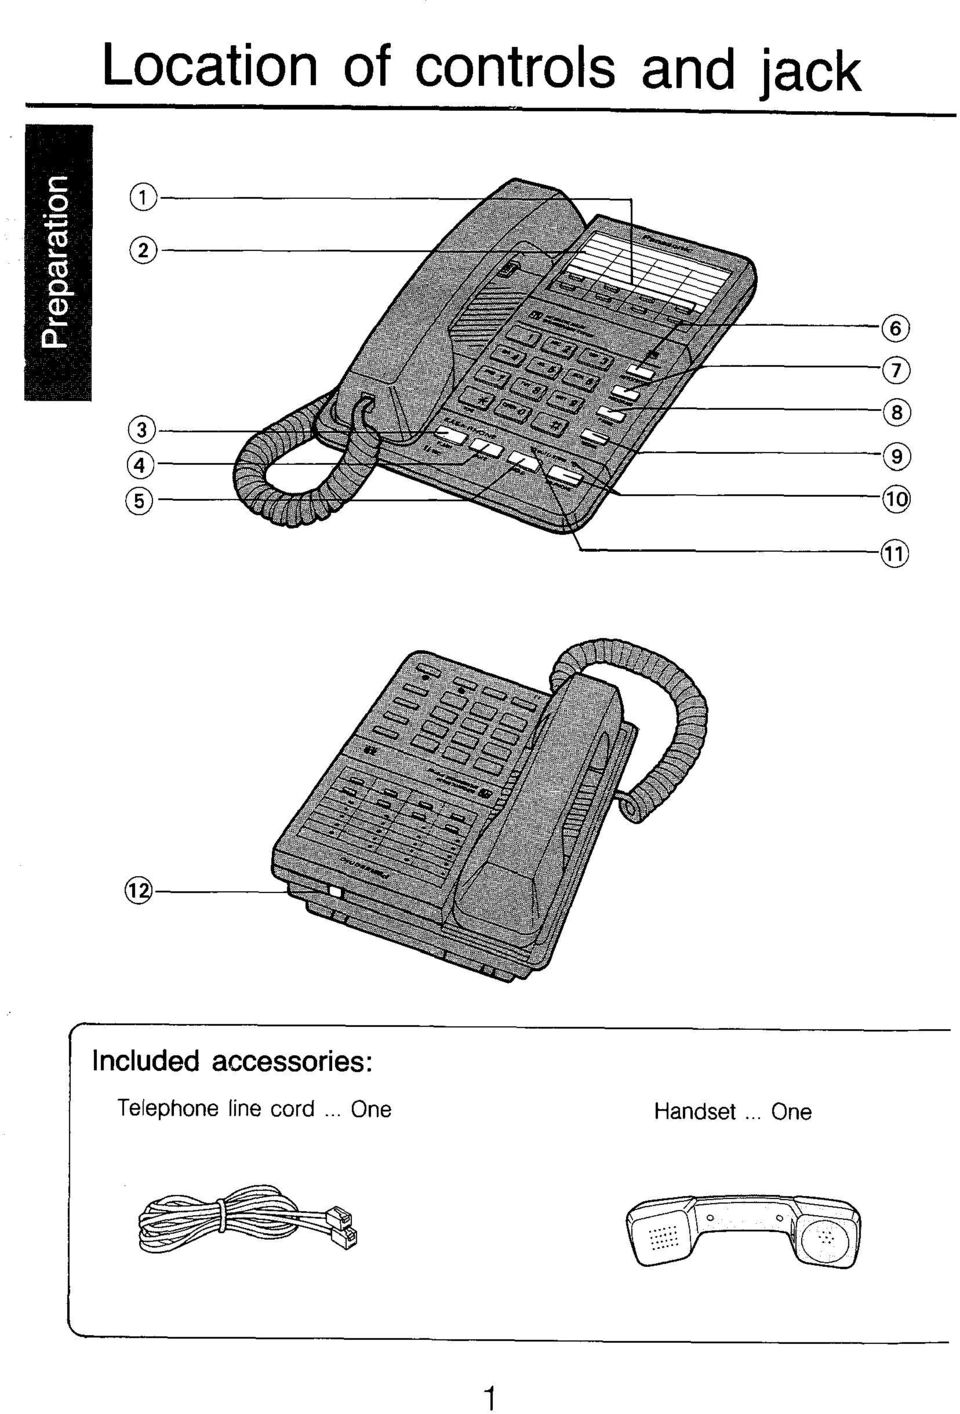 accessories: Telephone